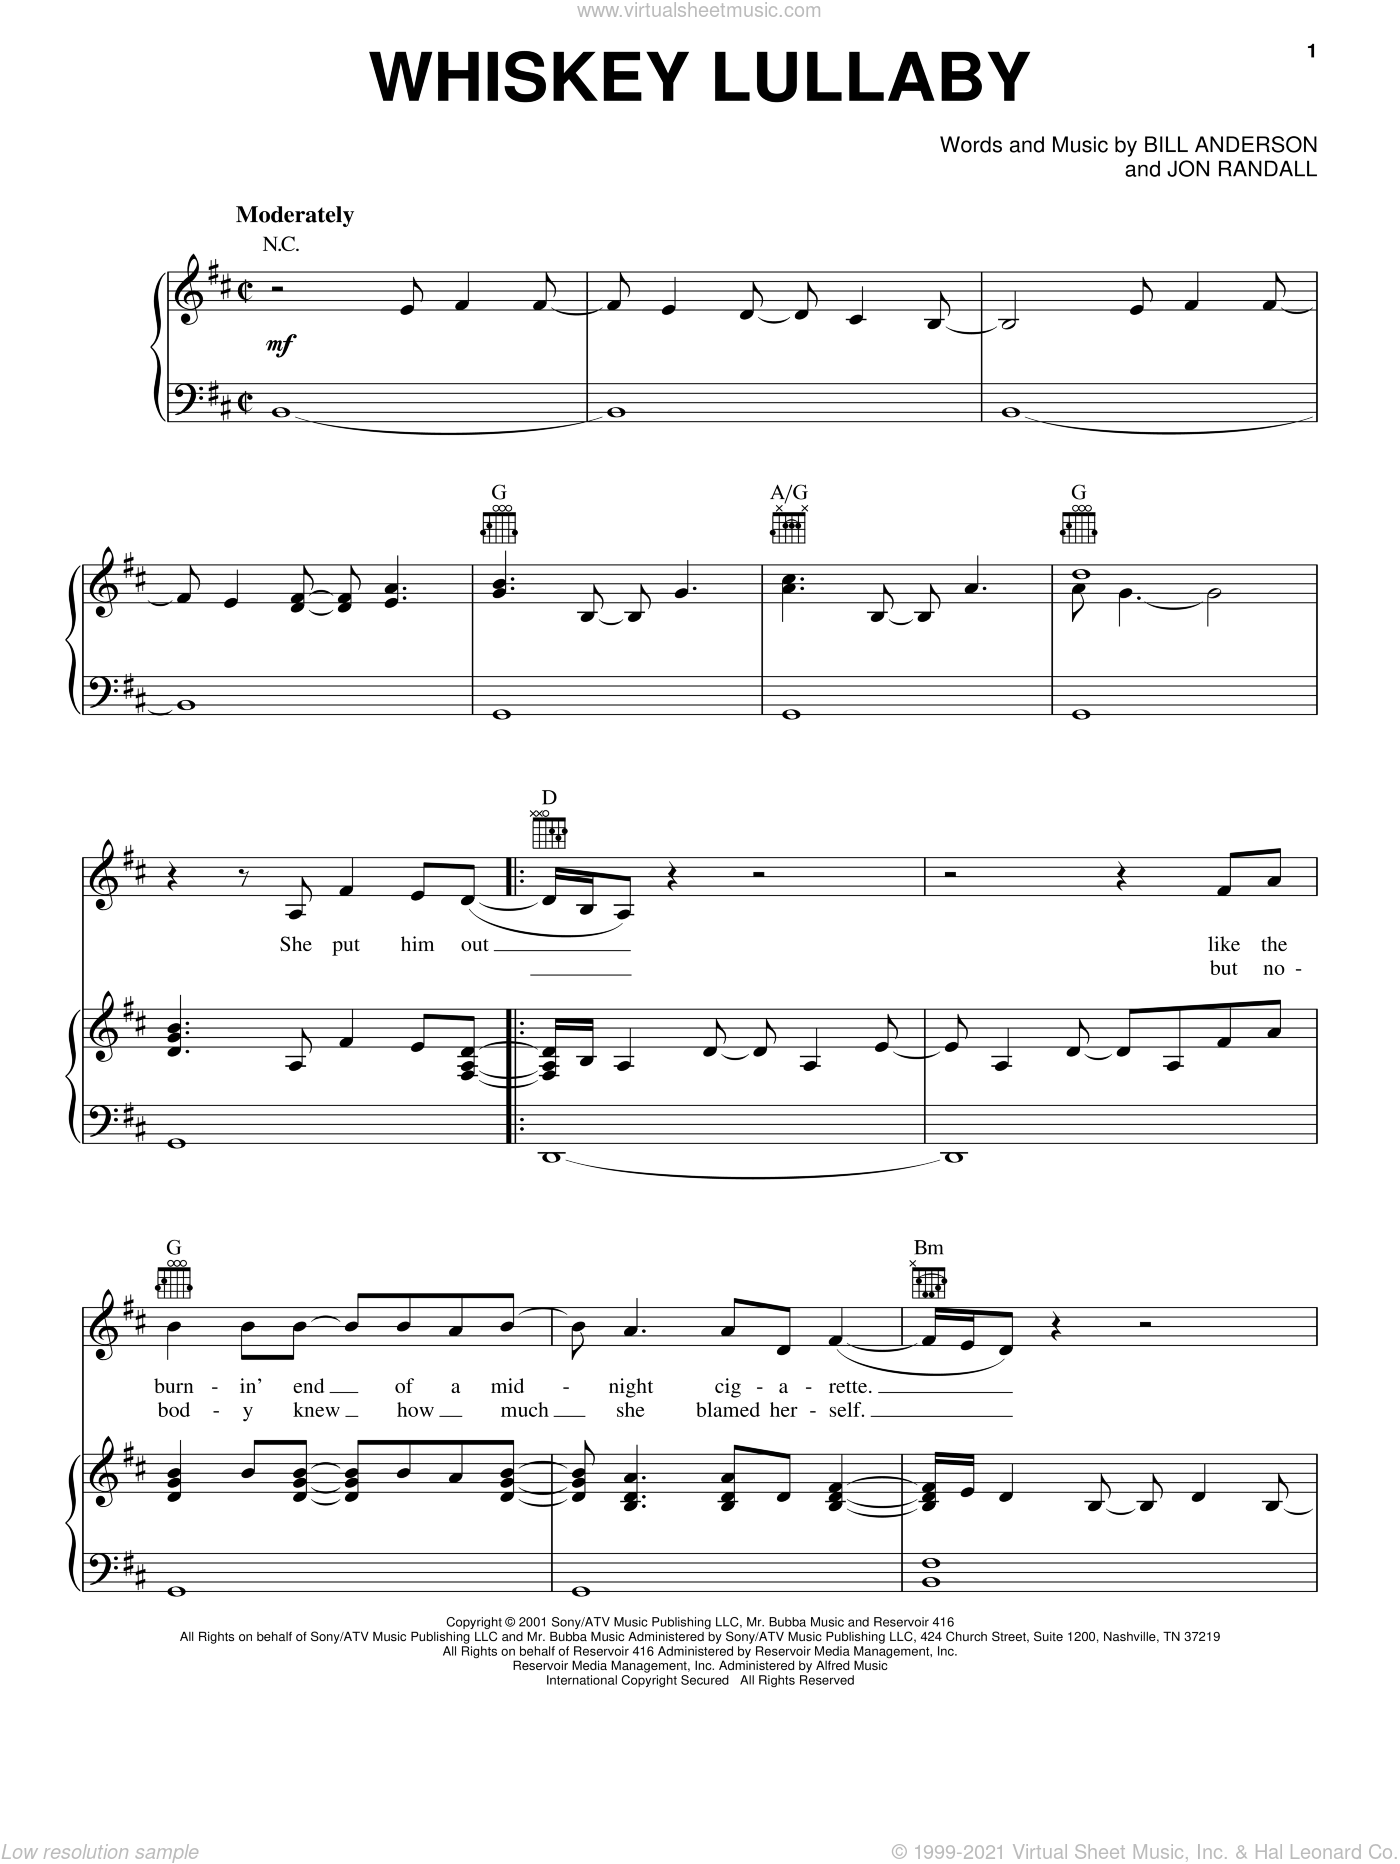 Whiskey Lullaby sheet music for voice, piano or guitar by Jon Randall